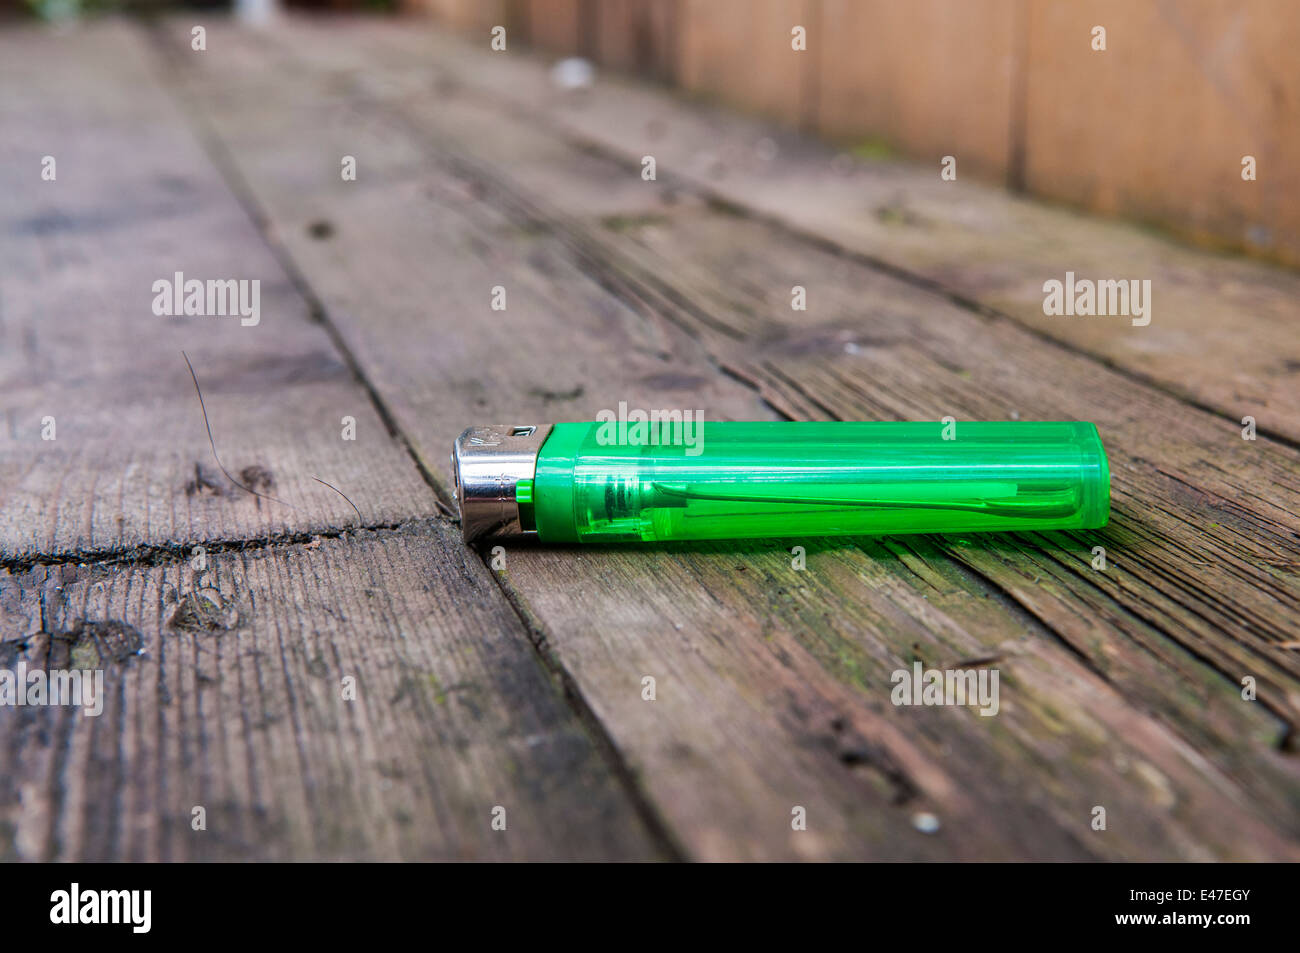 Cigarette lighter lying on a wooden table - Stock Image